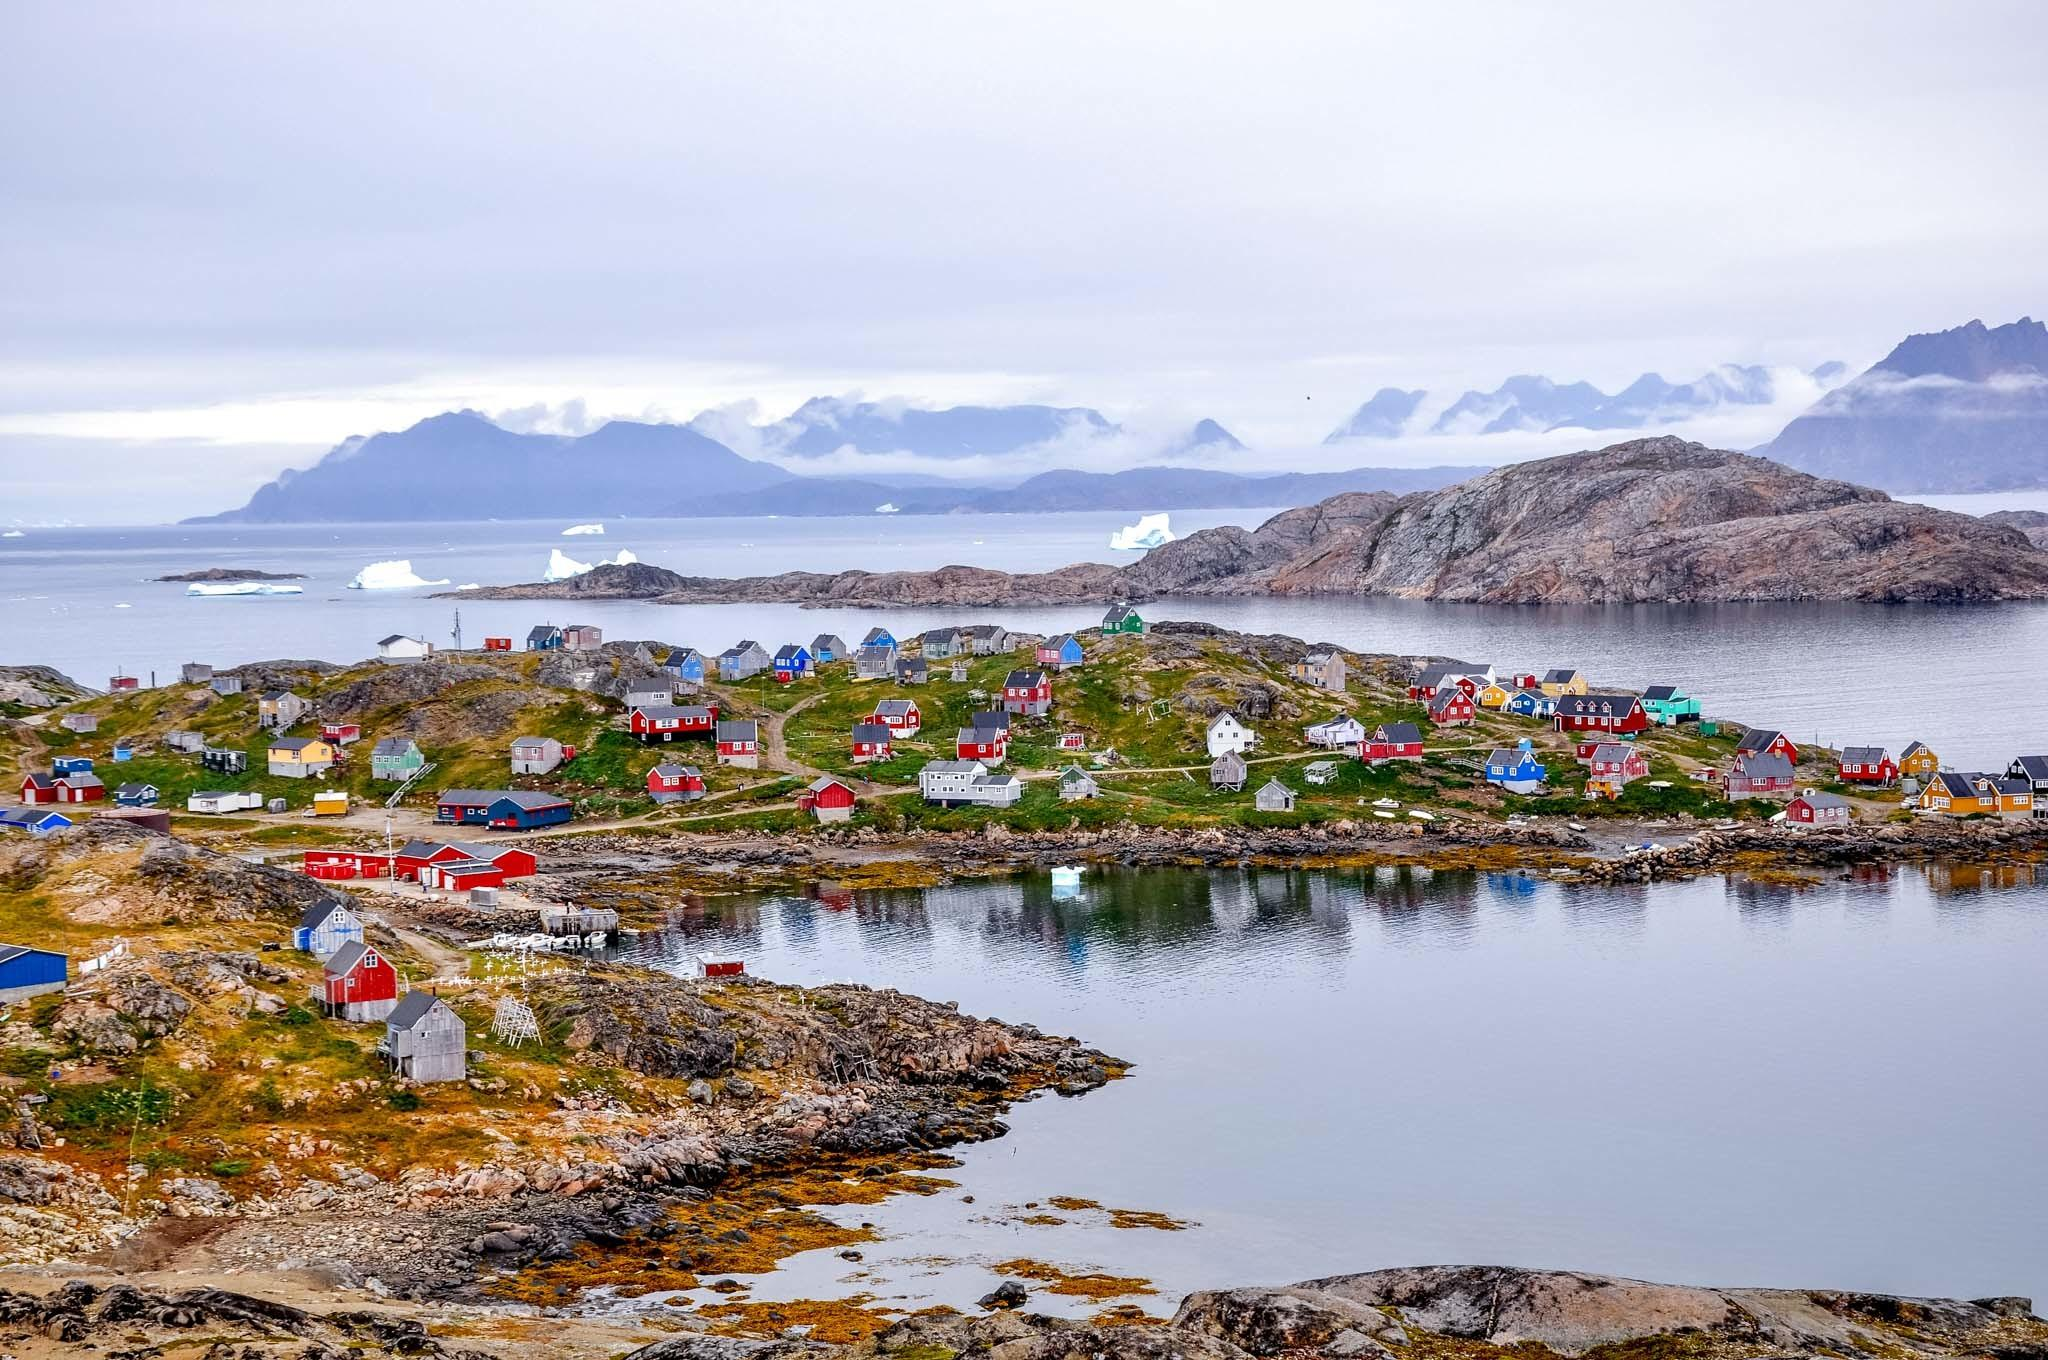 Harbor and colorful homes in Kulusuk, Greenland, a short flight from Iceland.